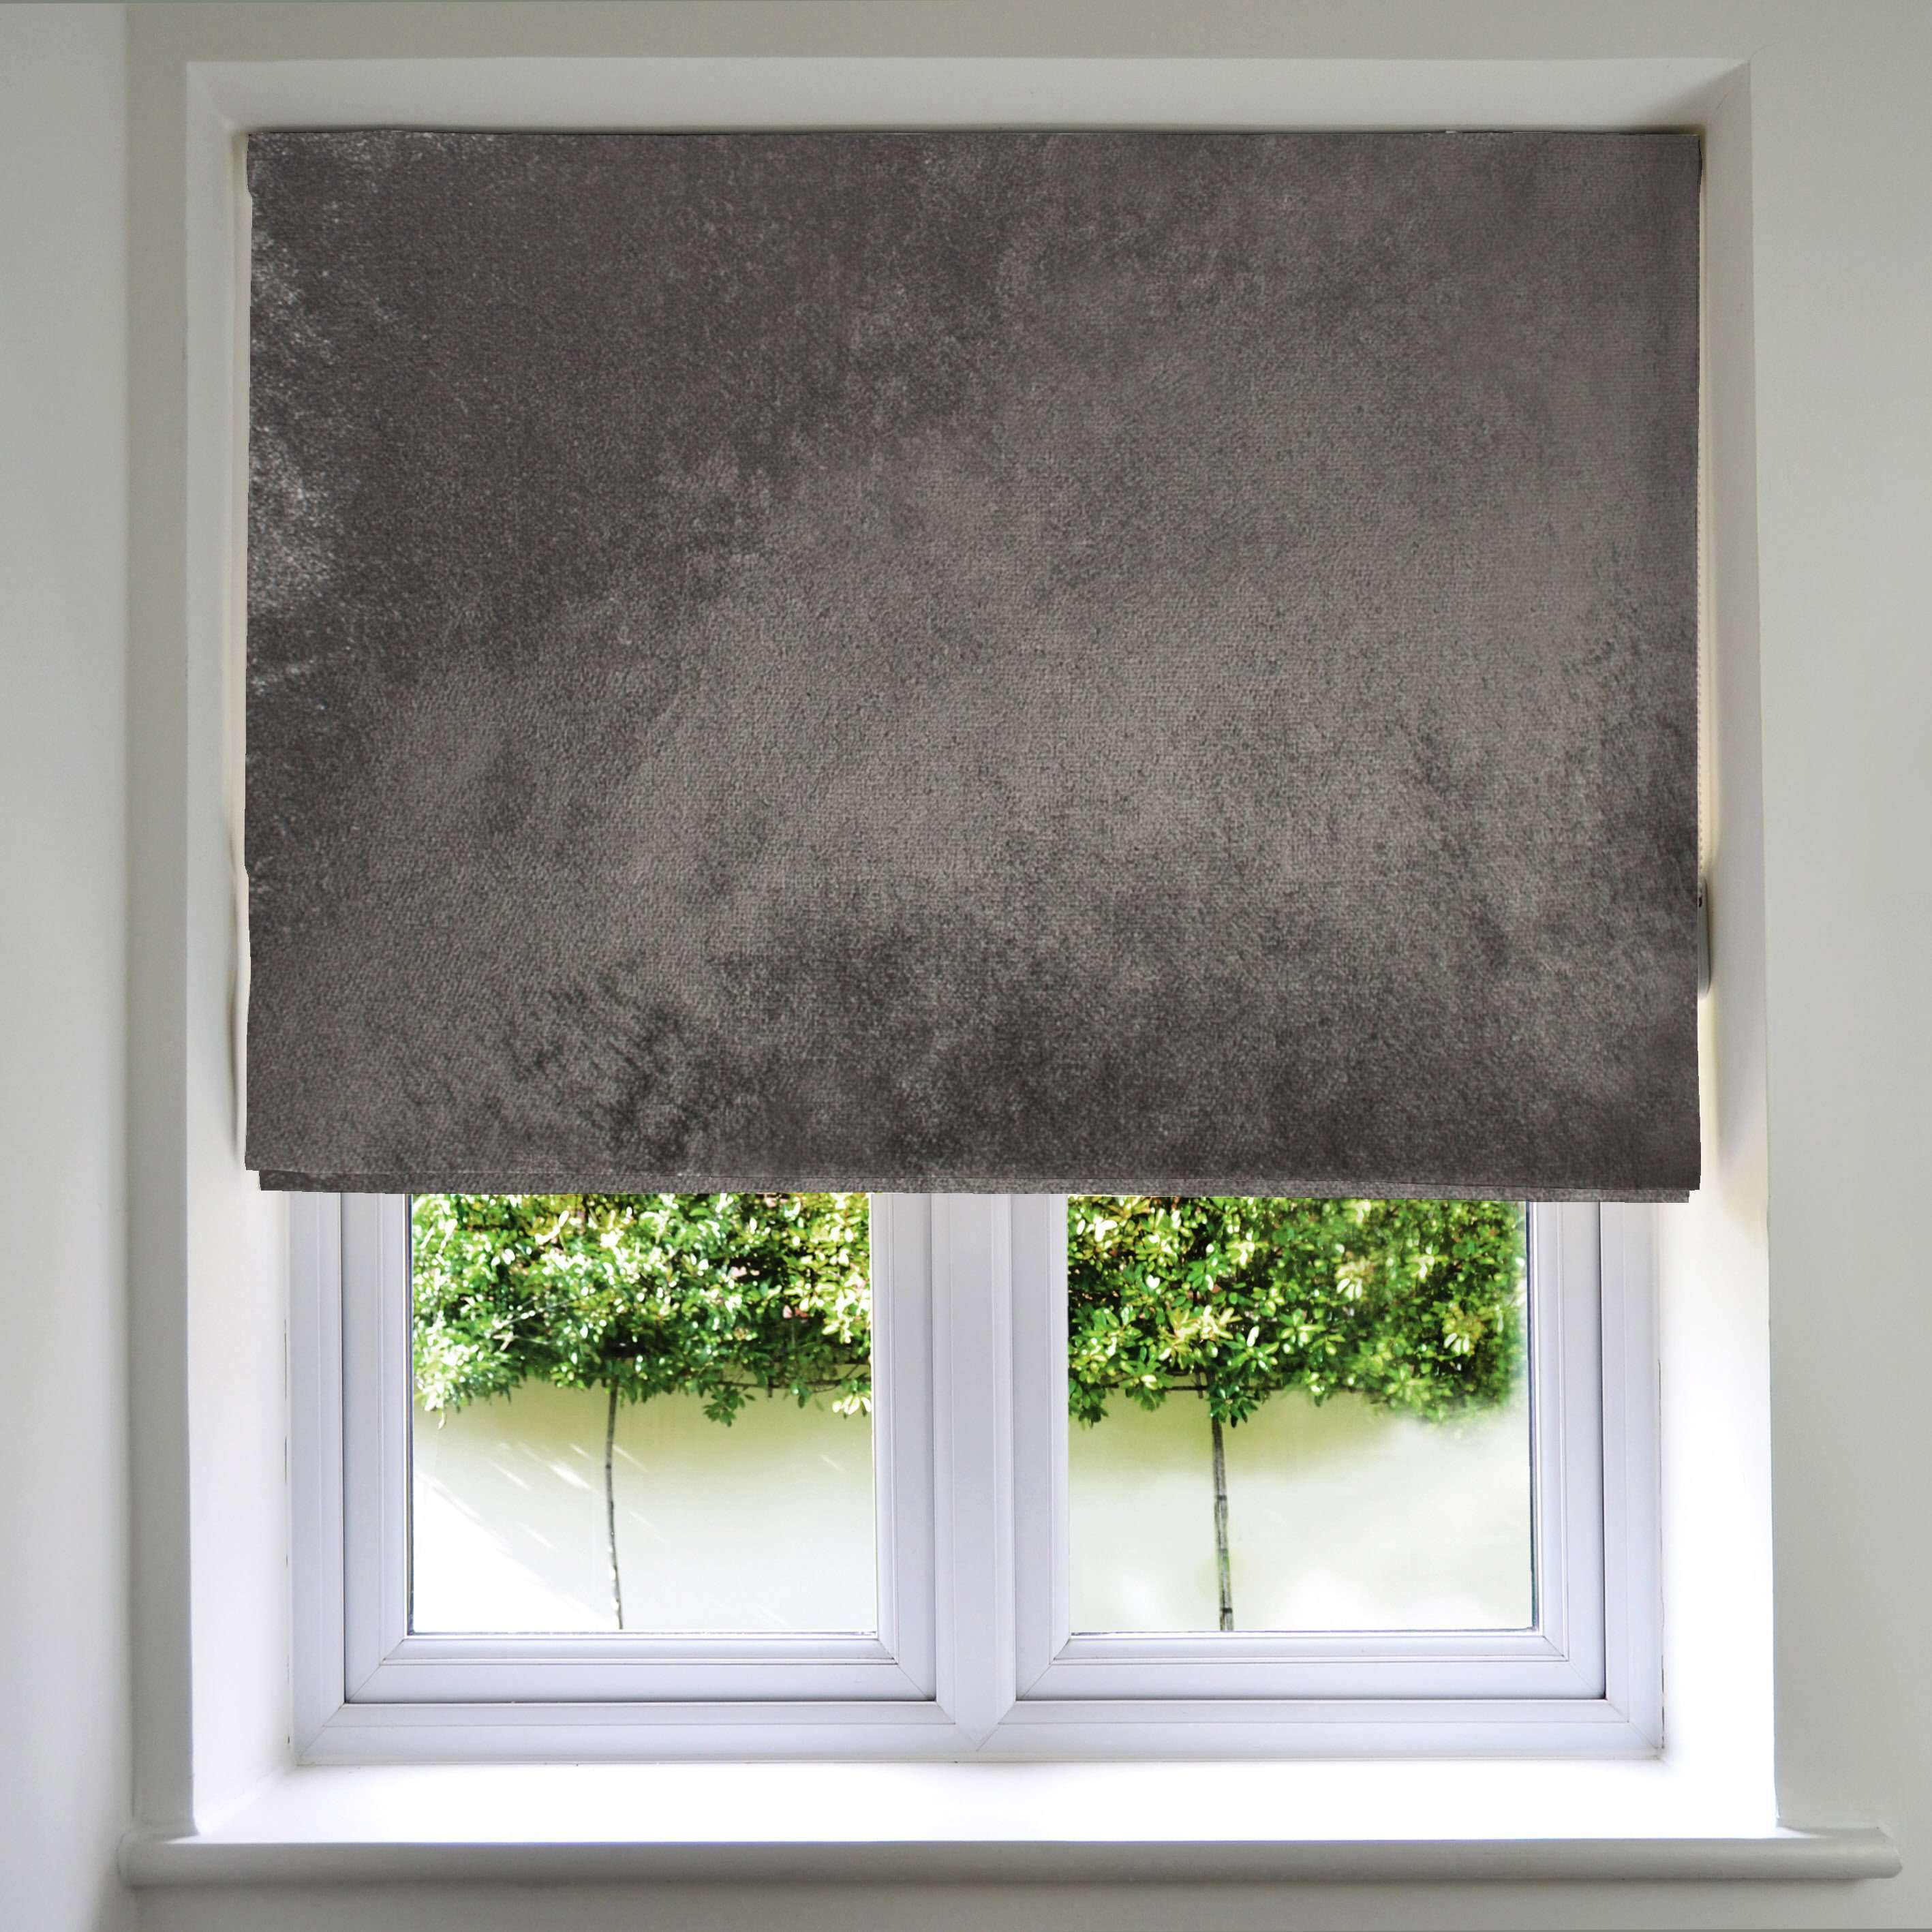 McAlister Textiles Charcoal Grey Crushed Velvet Roman Blind Roman Blinds Standard Lining 130cm x 200cm